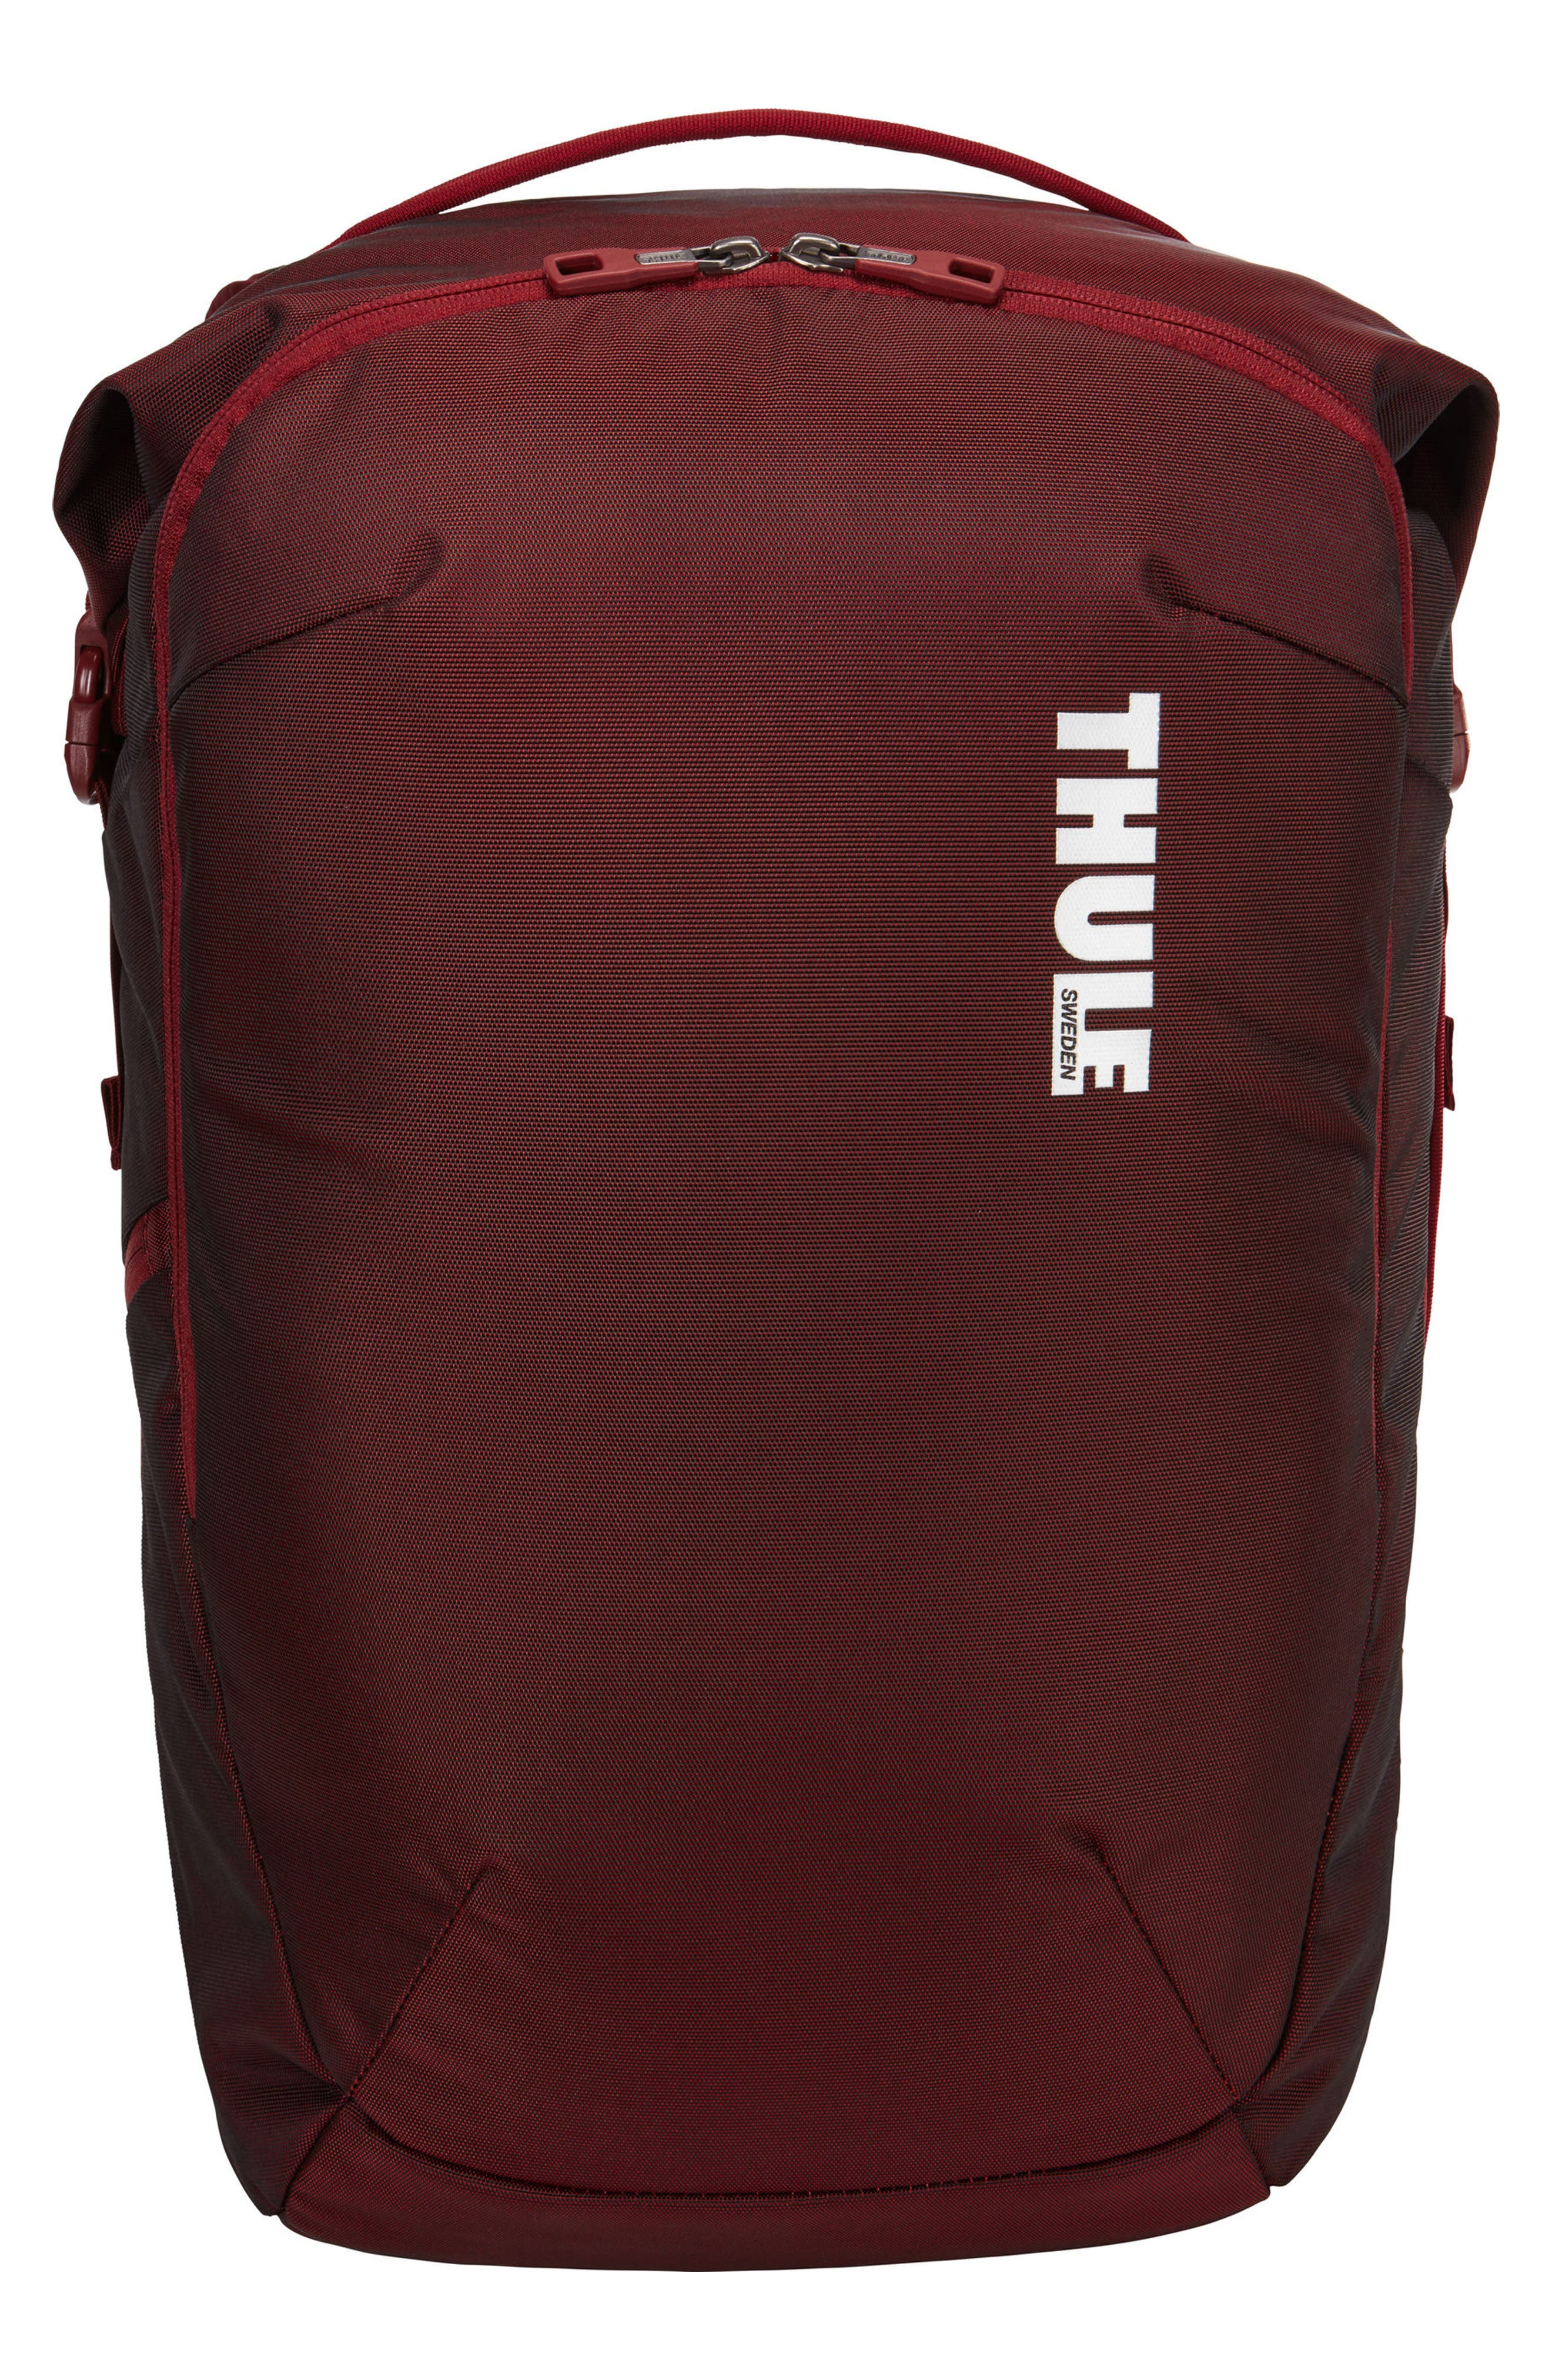 Alternate Image 1 Selected - Thule Subterra 34-Liter Backpack